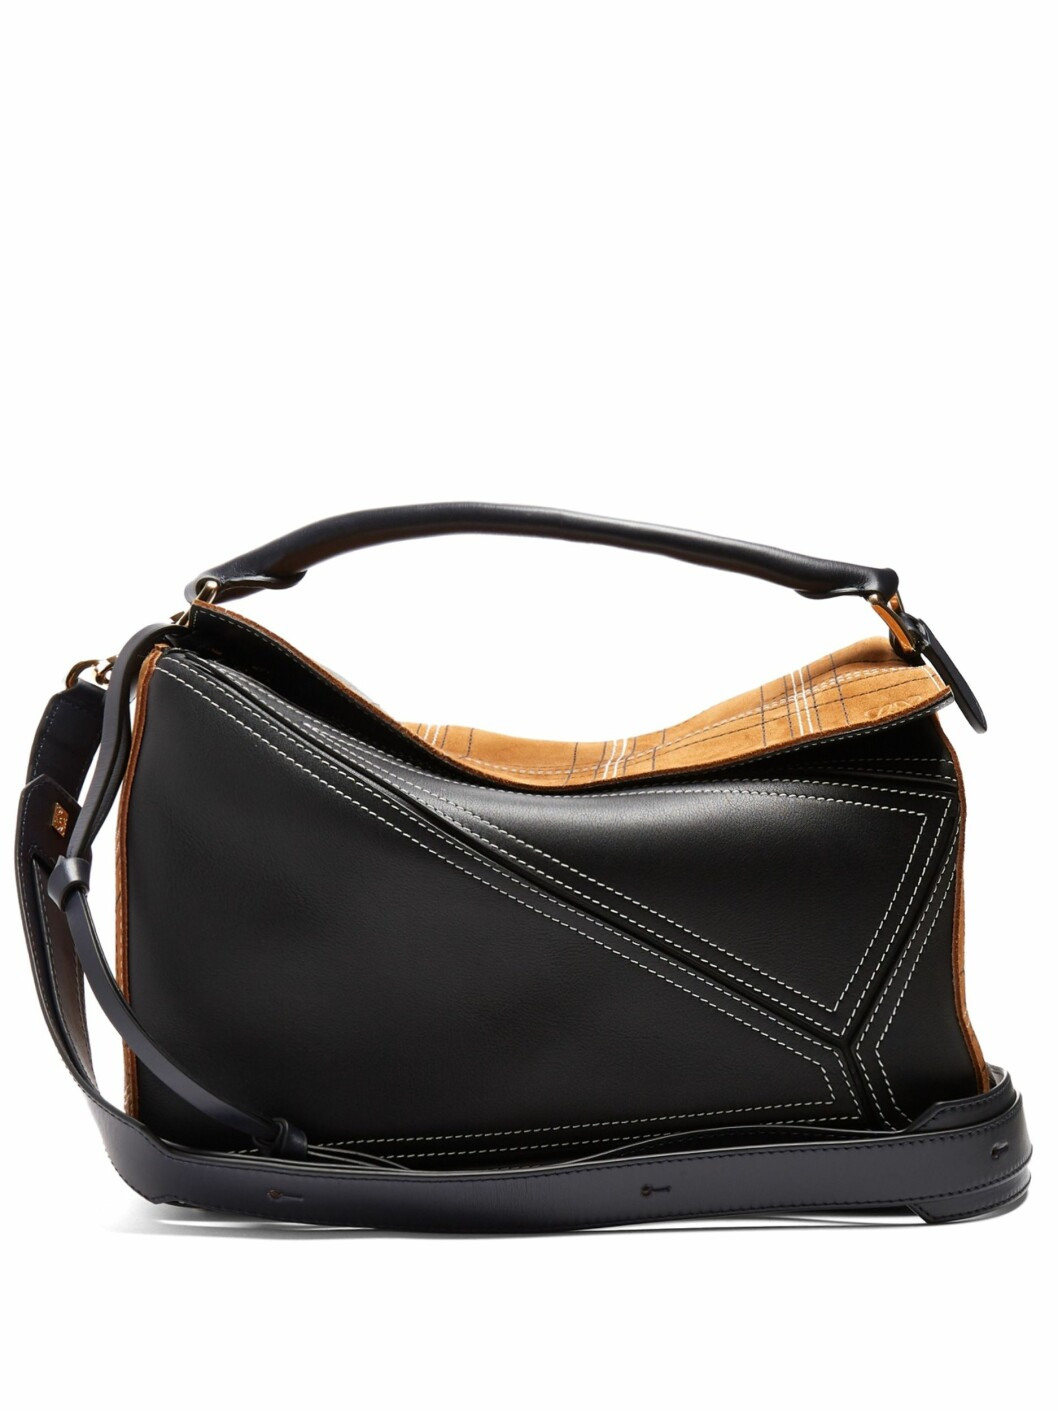 <strong>Veske fra Loewe |13200,-| https:</strong>//www.matchesfashion.com/intl/products/Loewe-Puzzle-contrast-panel-leather-and-suede-bag--1168845